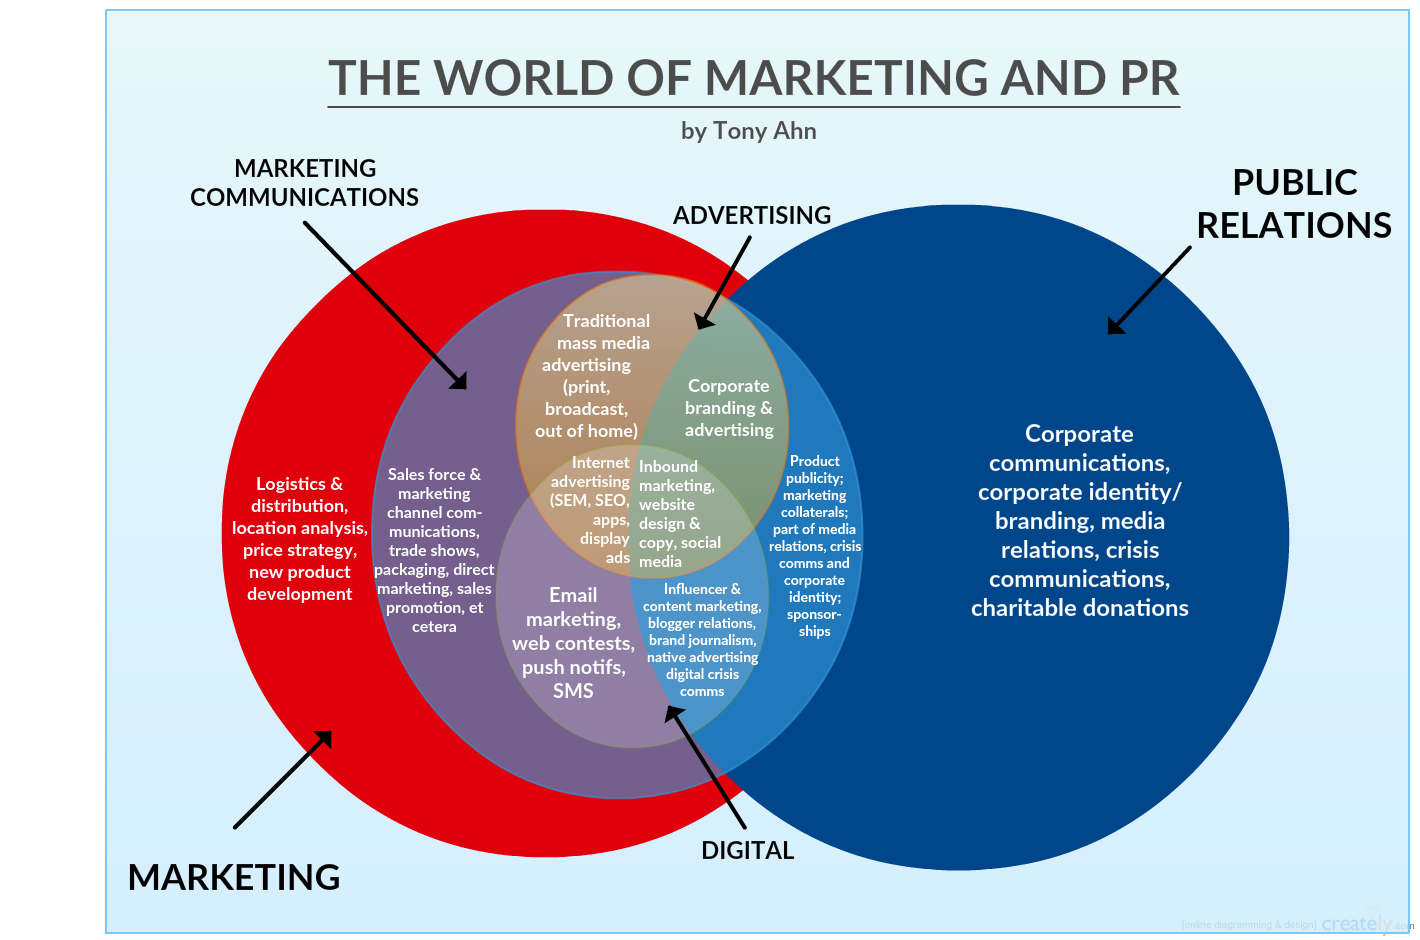 6 Way Venn Diagram Generator: World of Marketing and Pulbic Relations.jpg - Wikimedia Commons,Chart